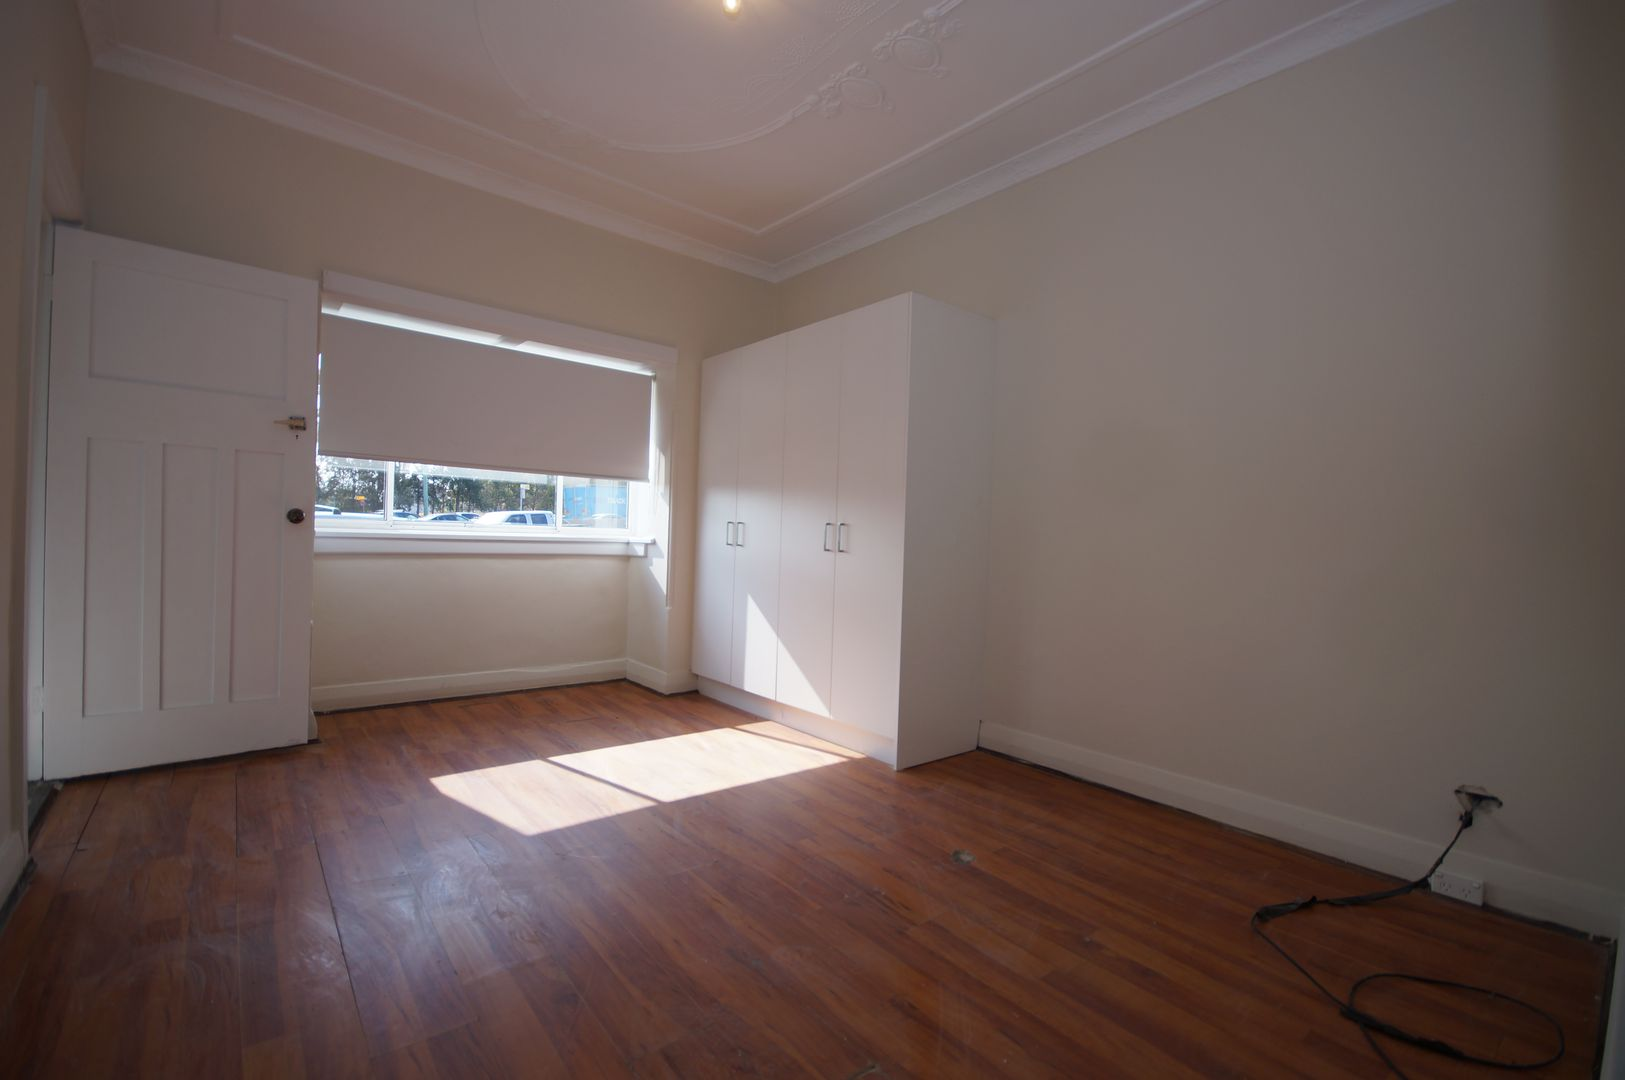 405 Stacey St, Bankstown NSW 2200, Image 1